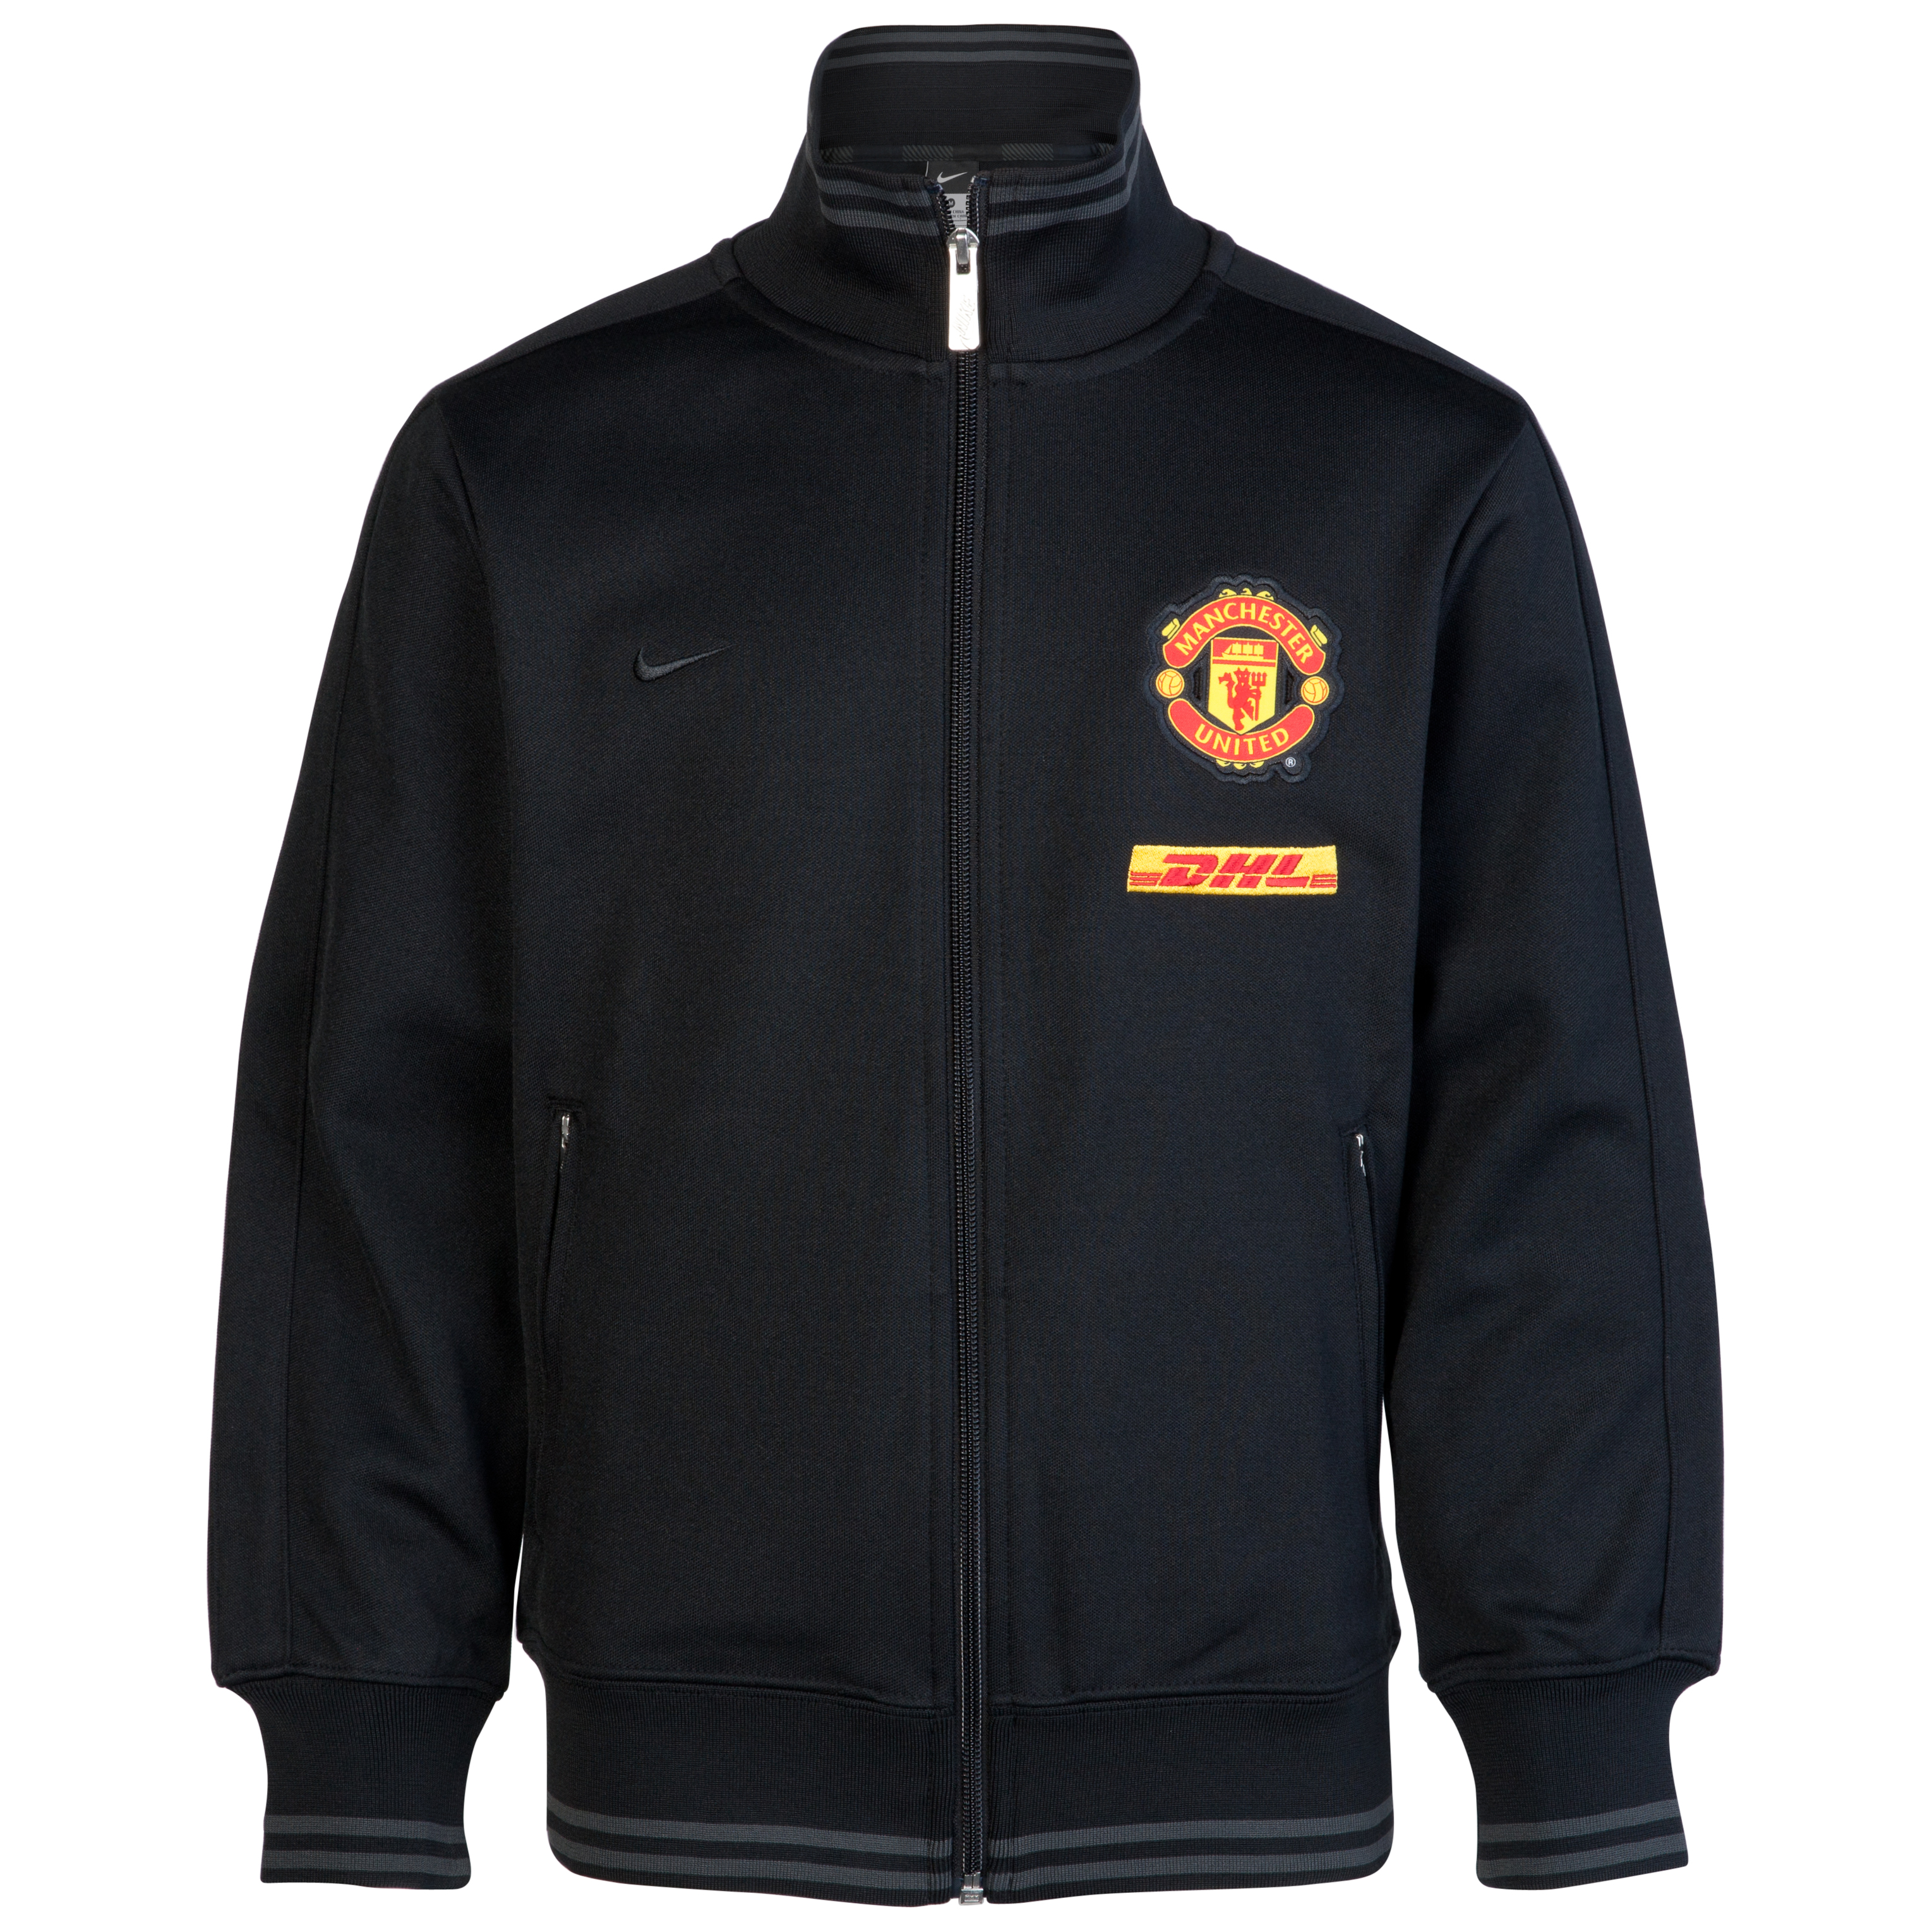 Manchester United Authentic N98 Jacket - Black/Anthracite/Black